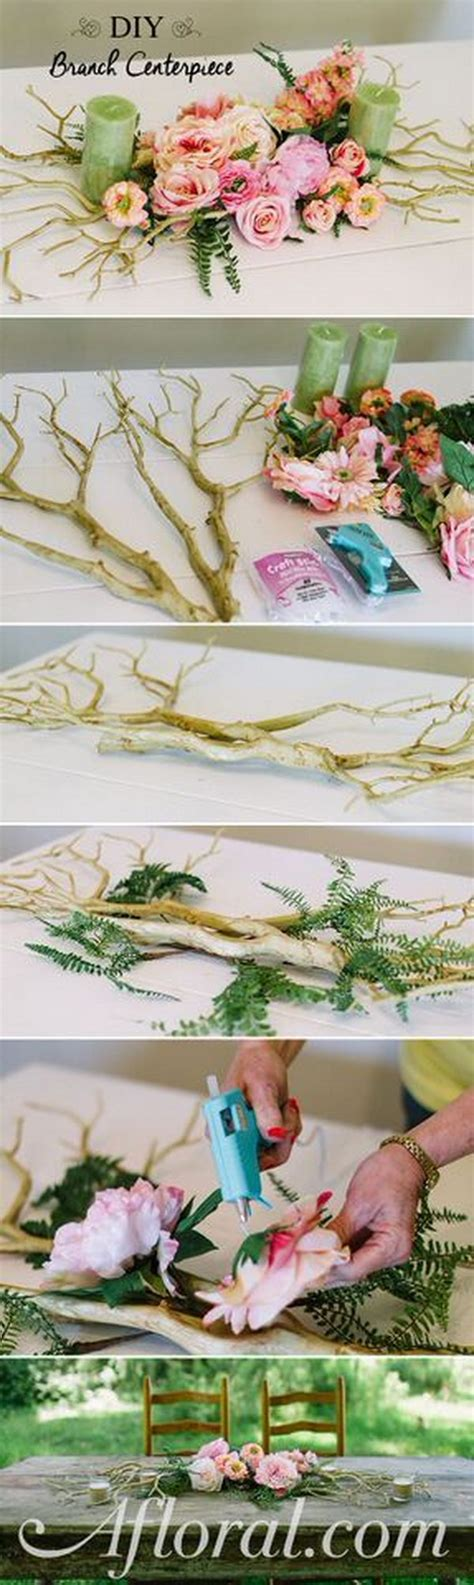 branch centerpiece diy awesome diy wedding centerpiece ideas tutorials